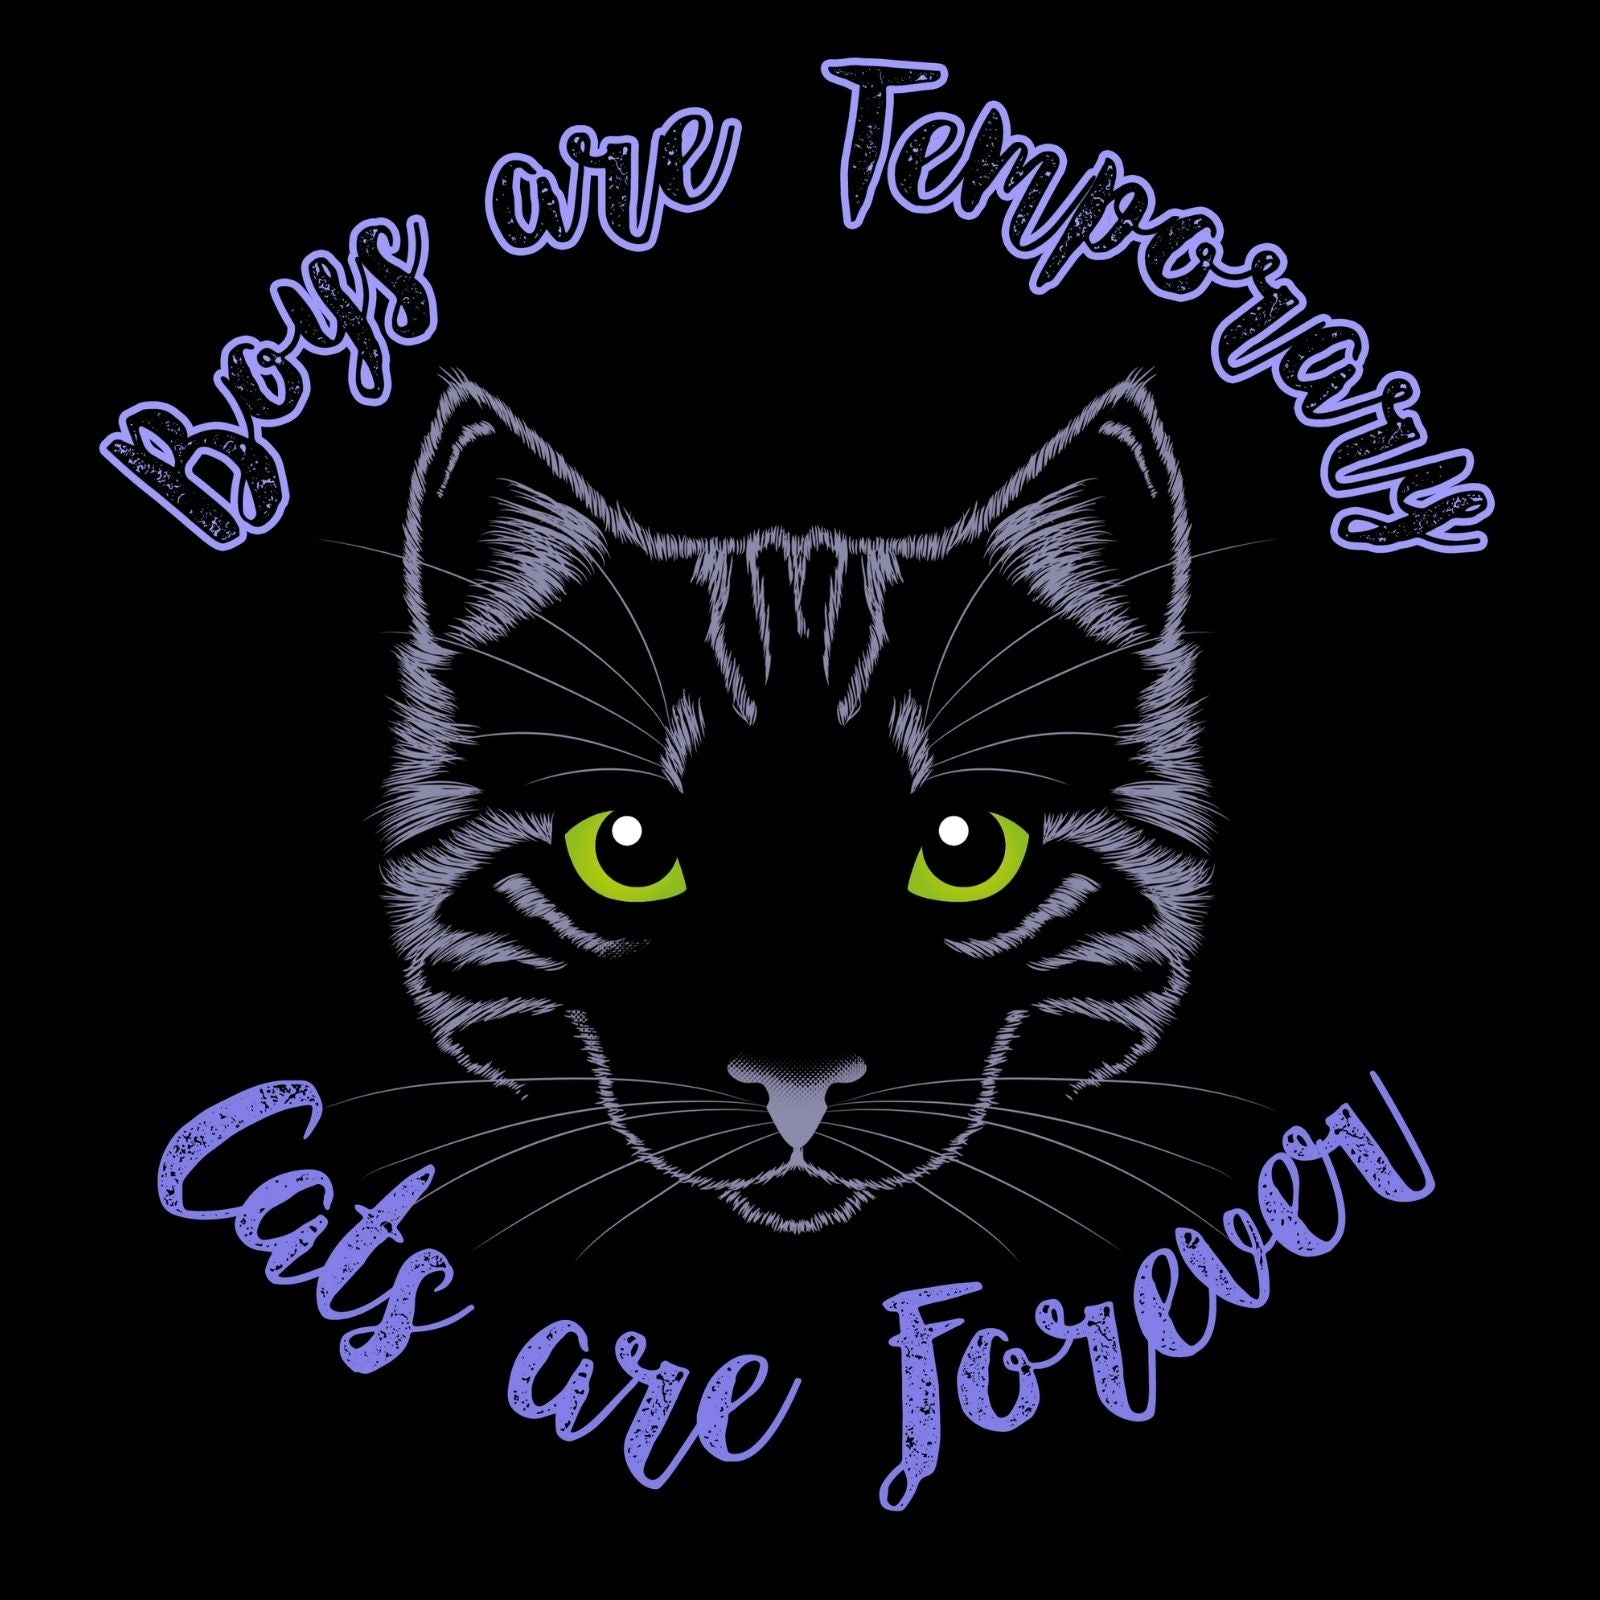 Boys Are Temporary Cats Are Forever! - Bastard Graphics